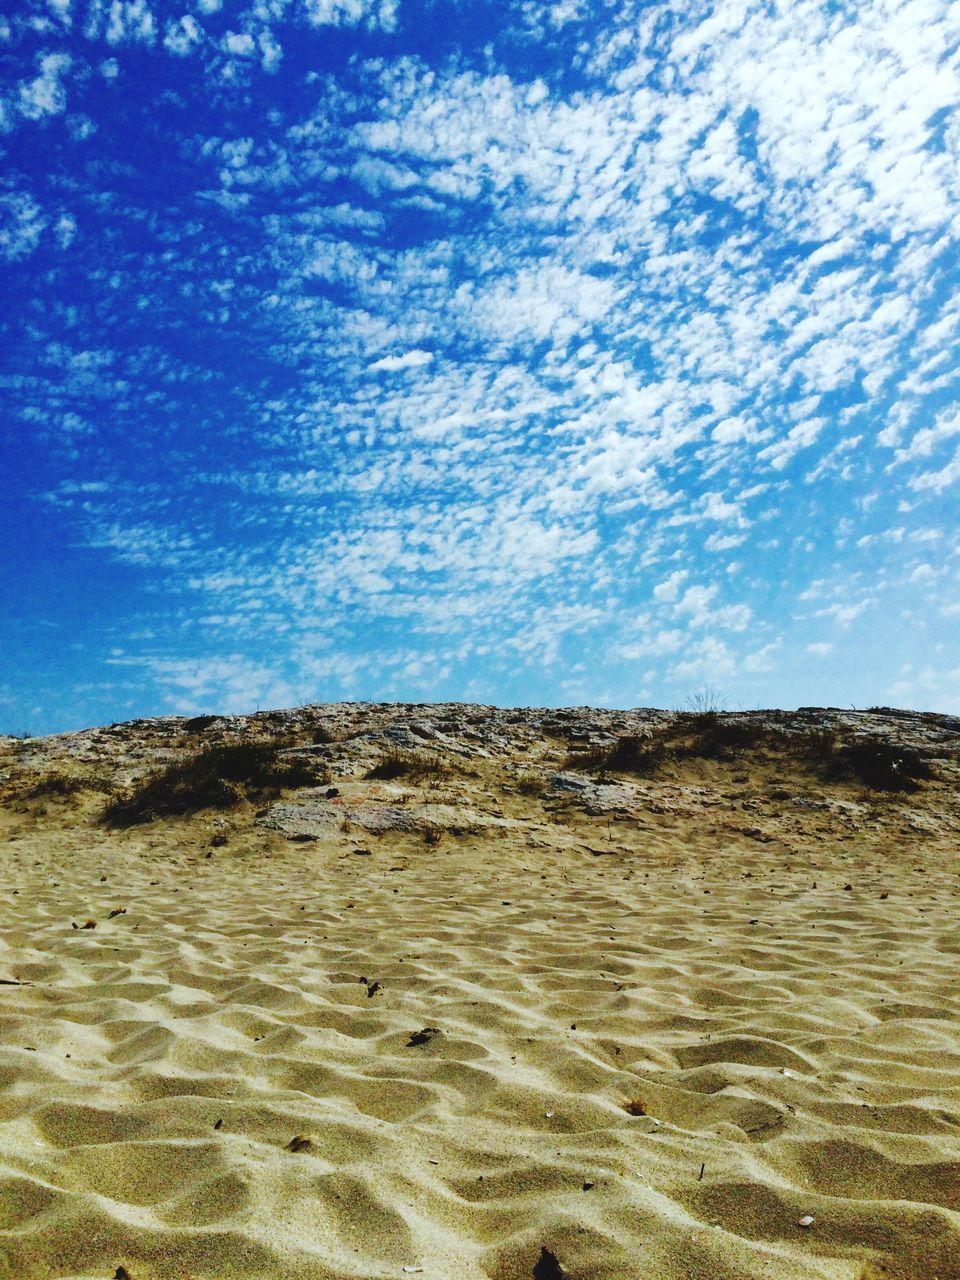 sand, sky, nature, beauty in nature, no people, tranquility, day, scenics, outdoors, landscape, beach, tranquil scene, blue, cloud - sky, sand dune, desert, water